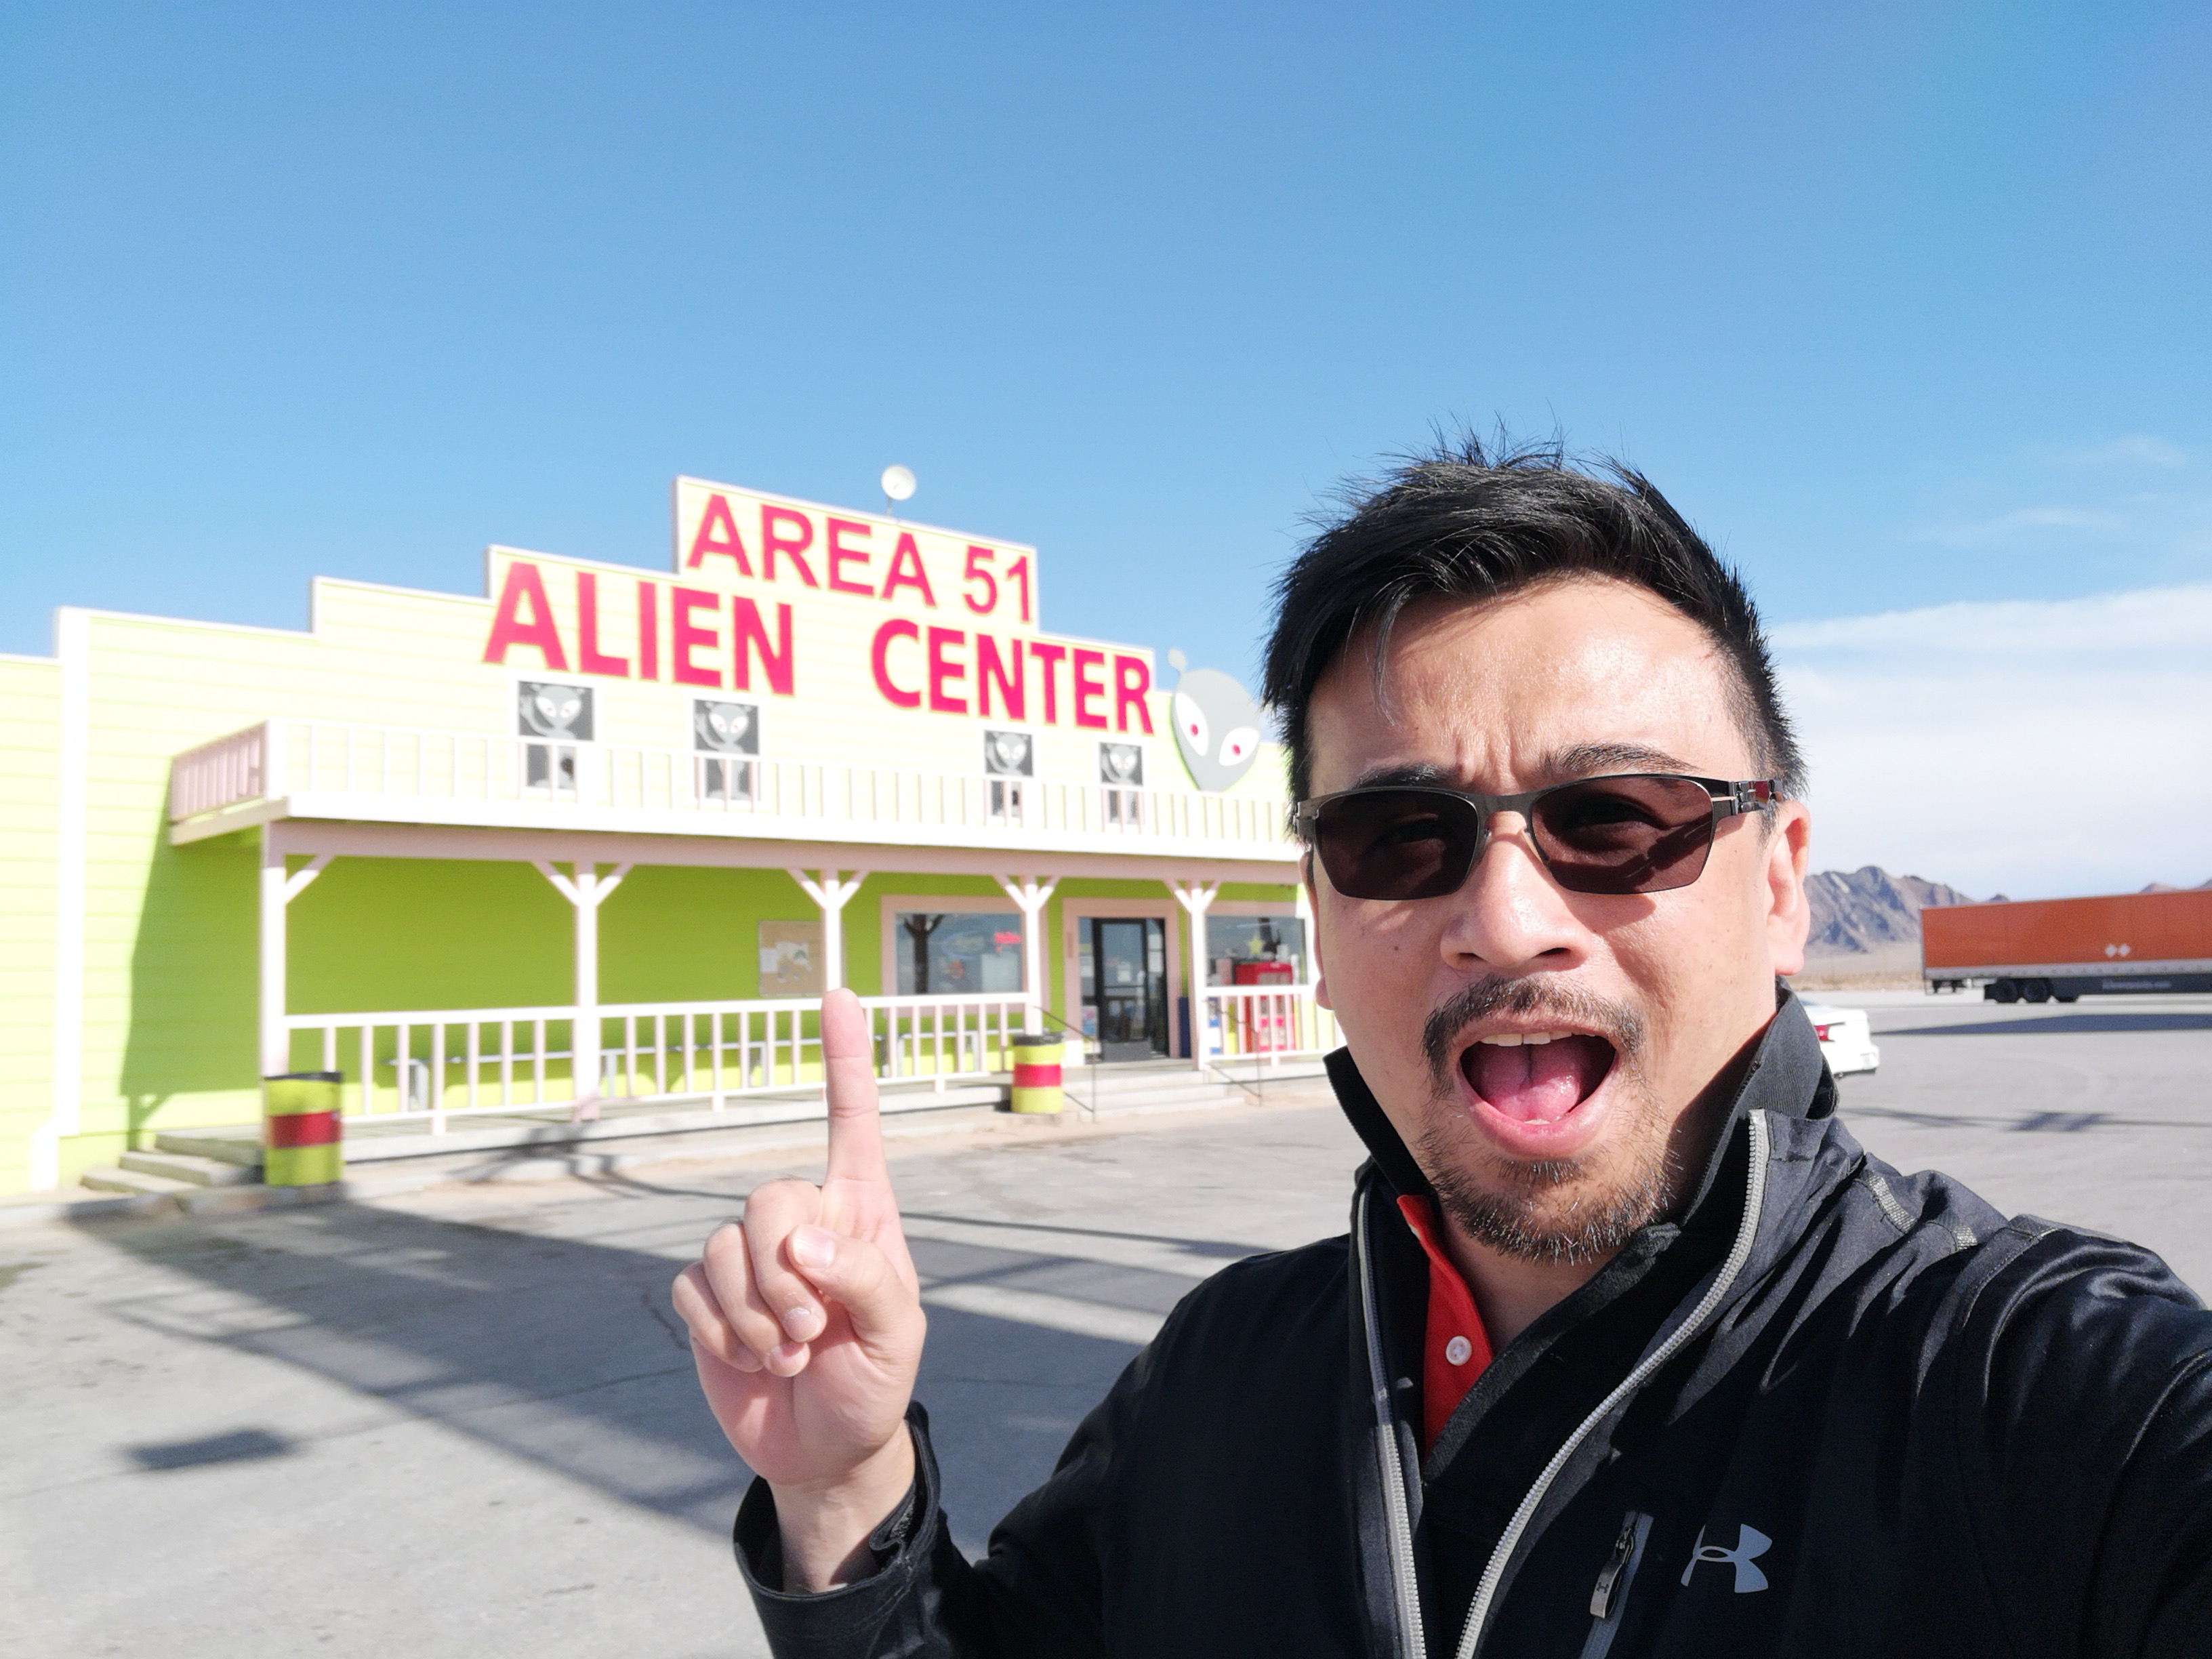 An eventful road trip – Lost car, Area 51 and sliding down the world's tallest glass slide